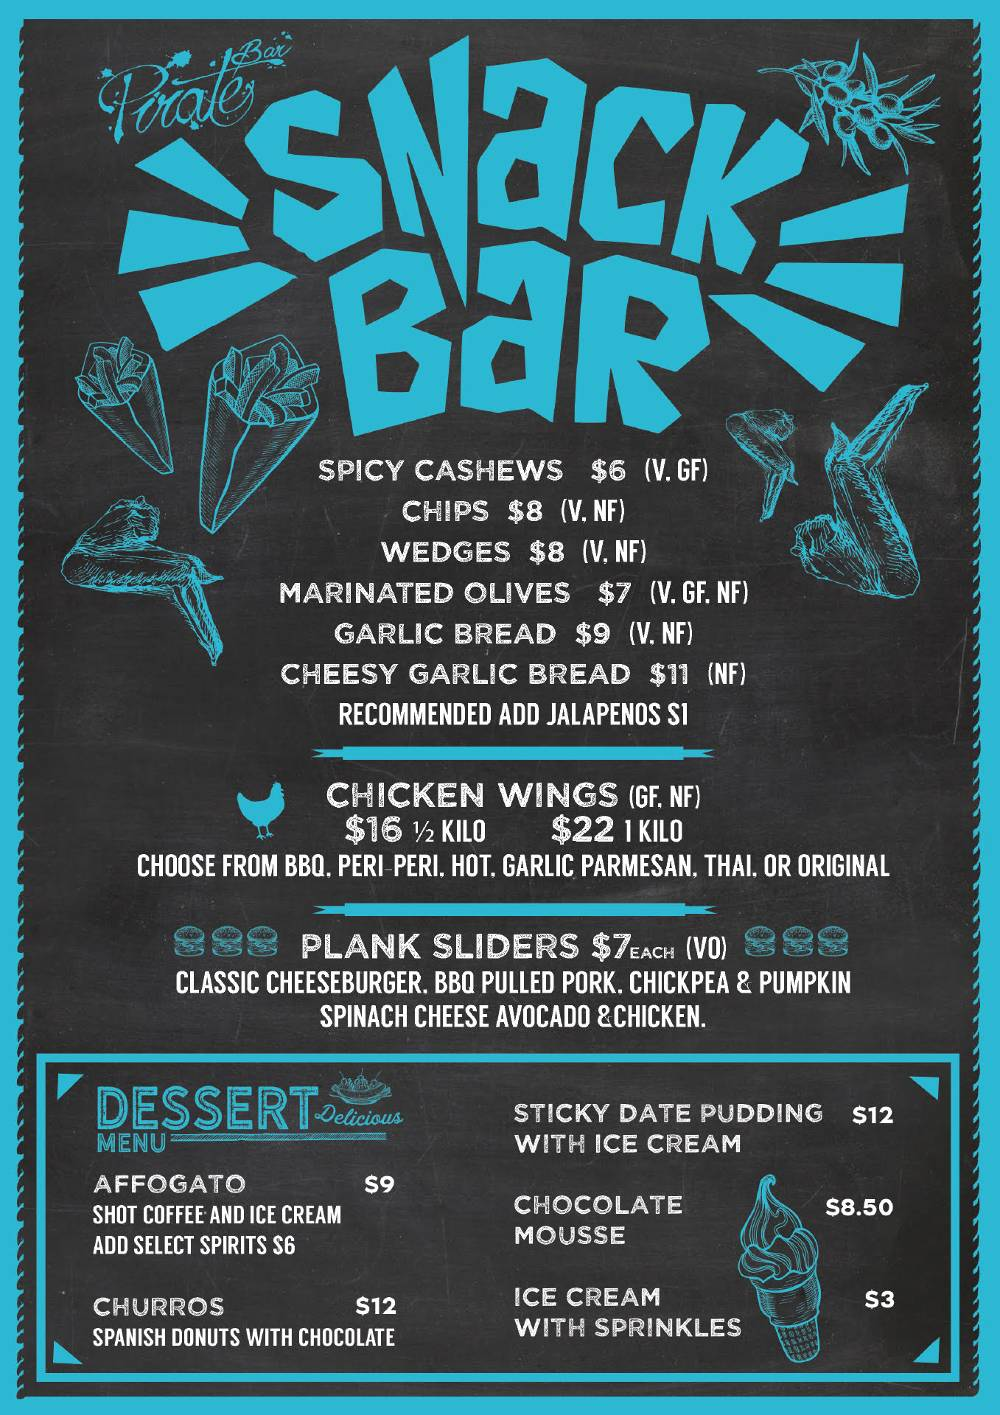 Snackbar-PirateBar-Menu